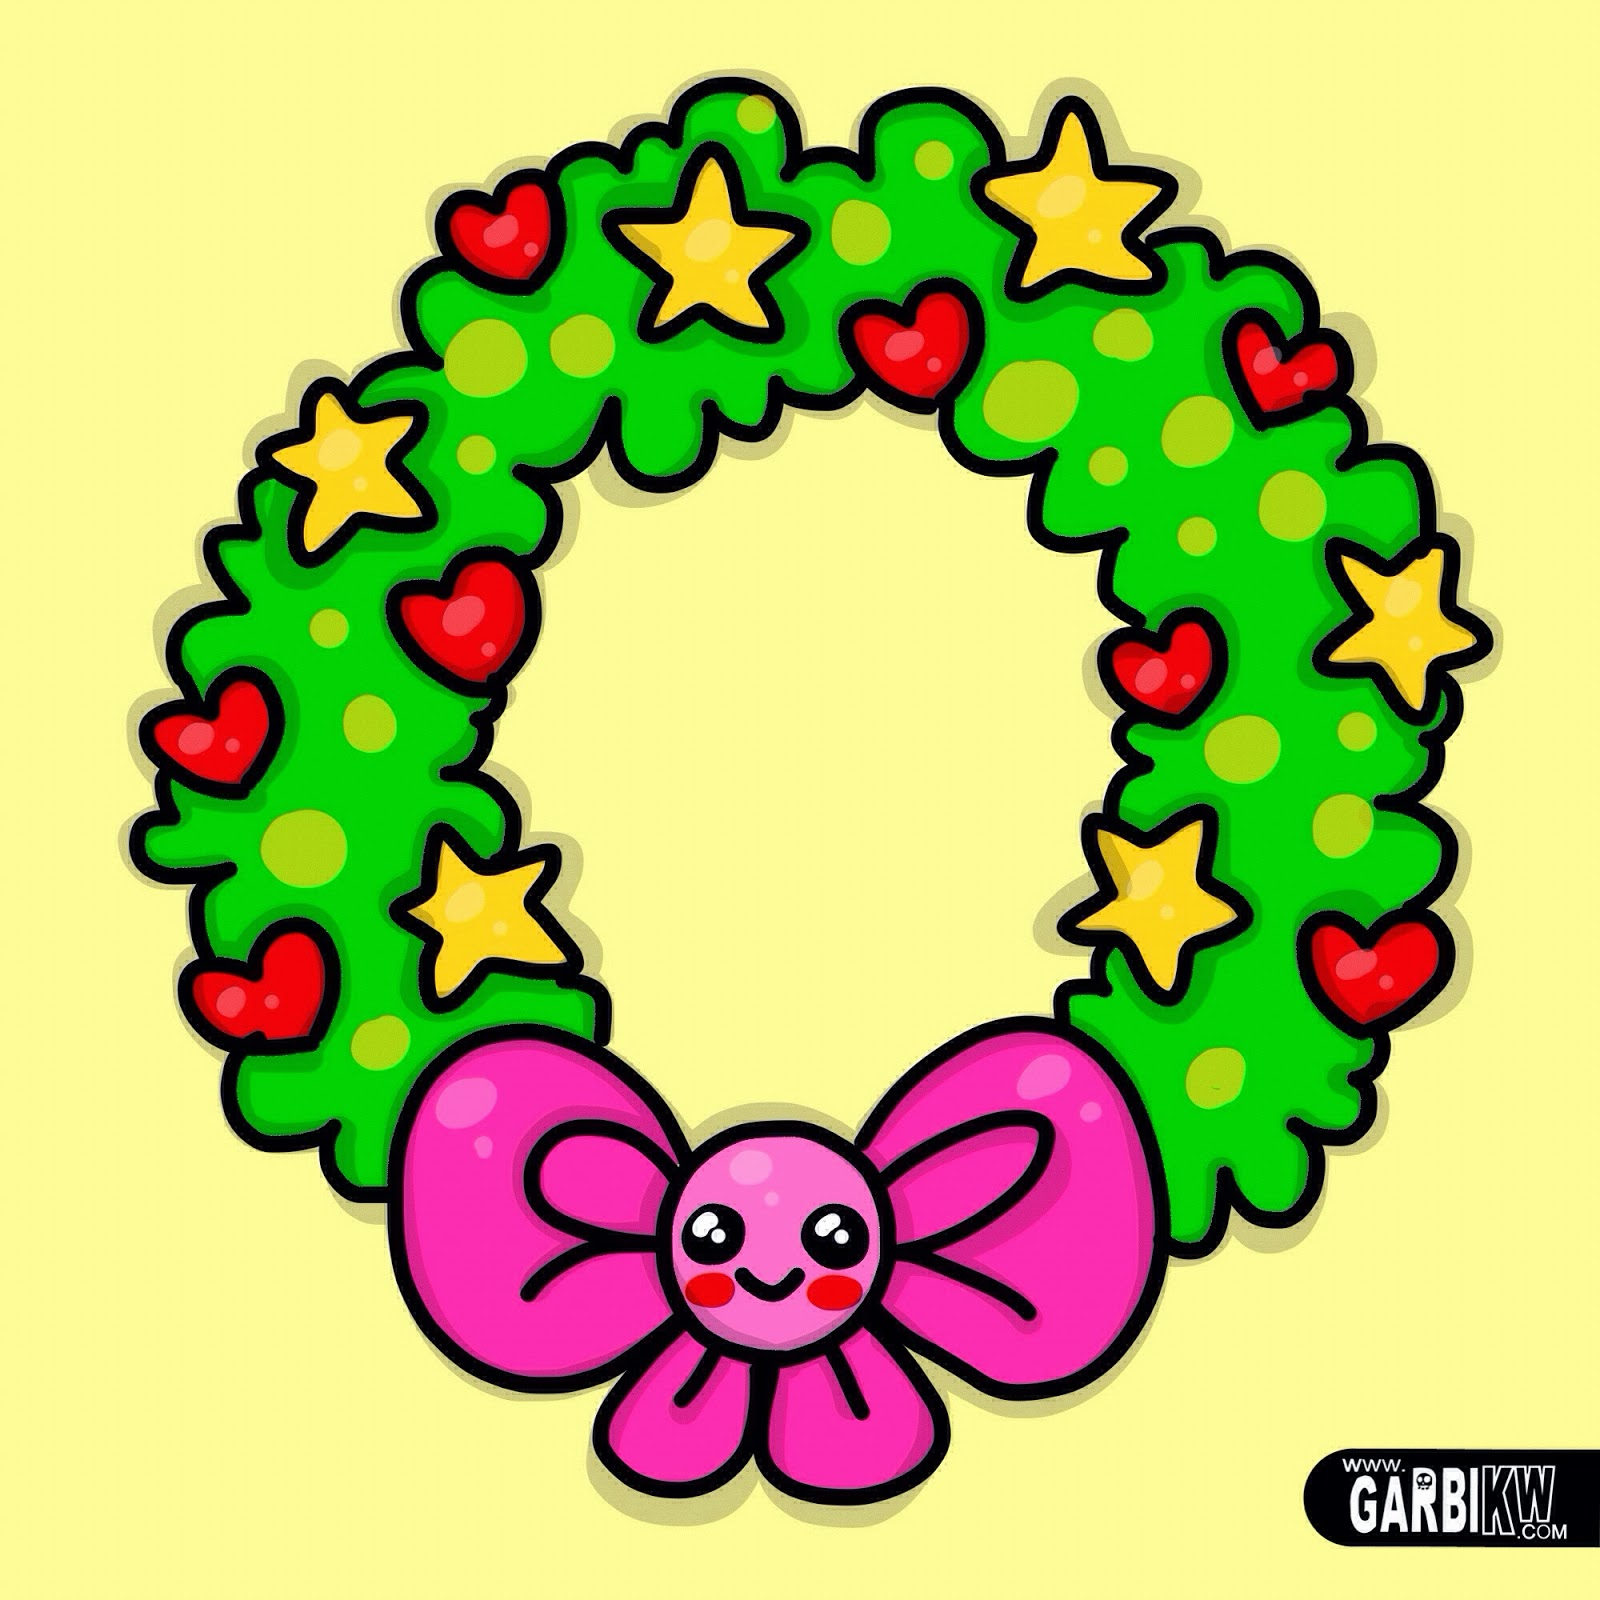 how to draw a circular wreath kawaii style christmas drawings by